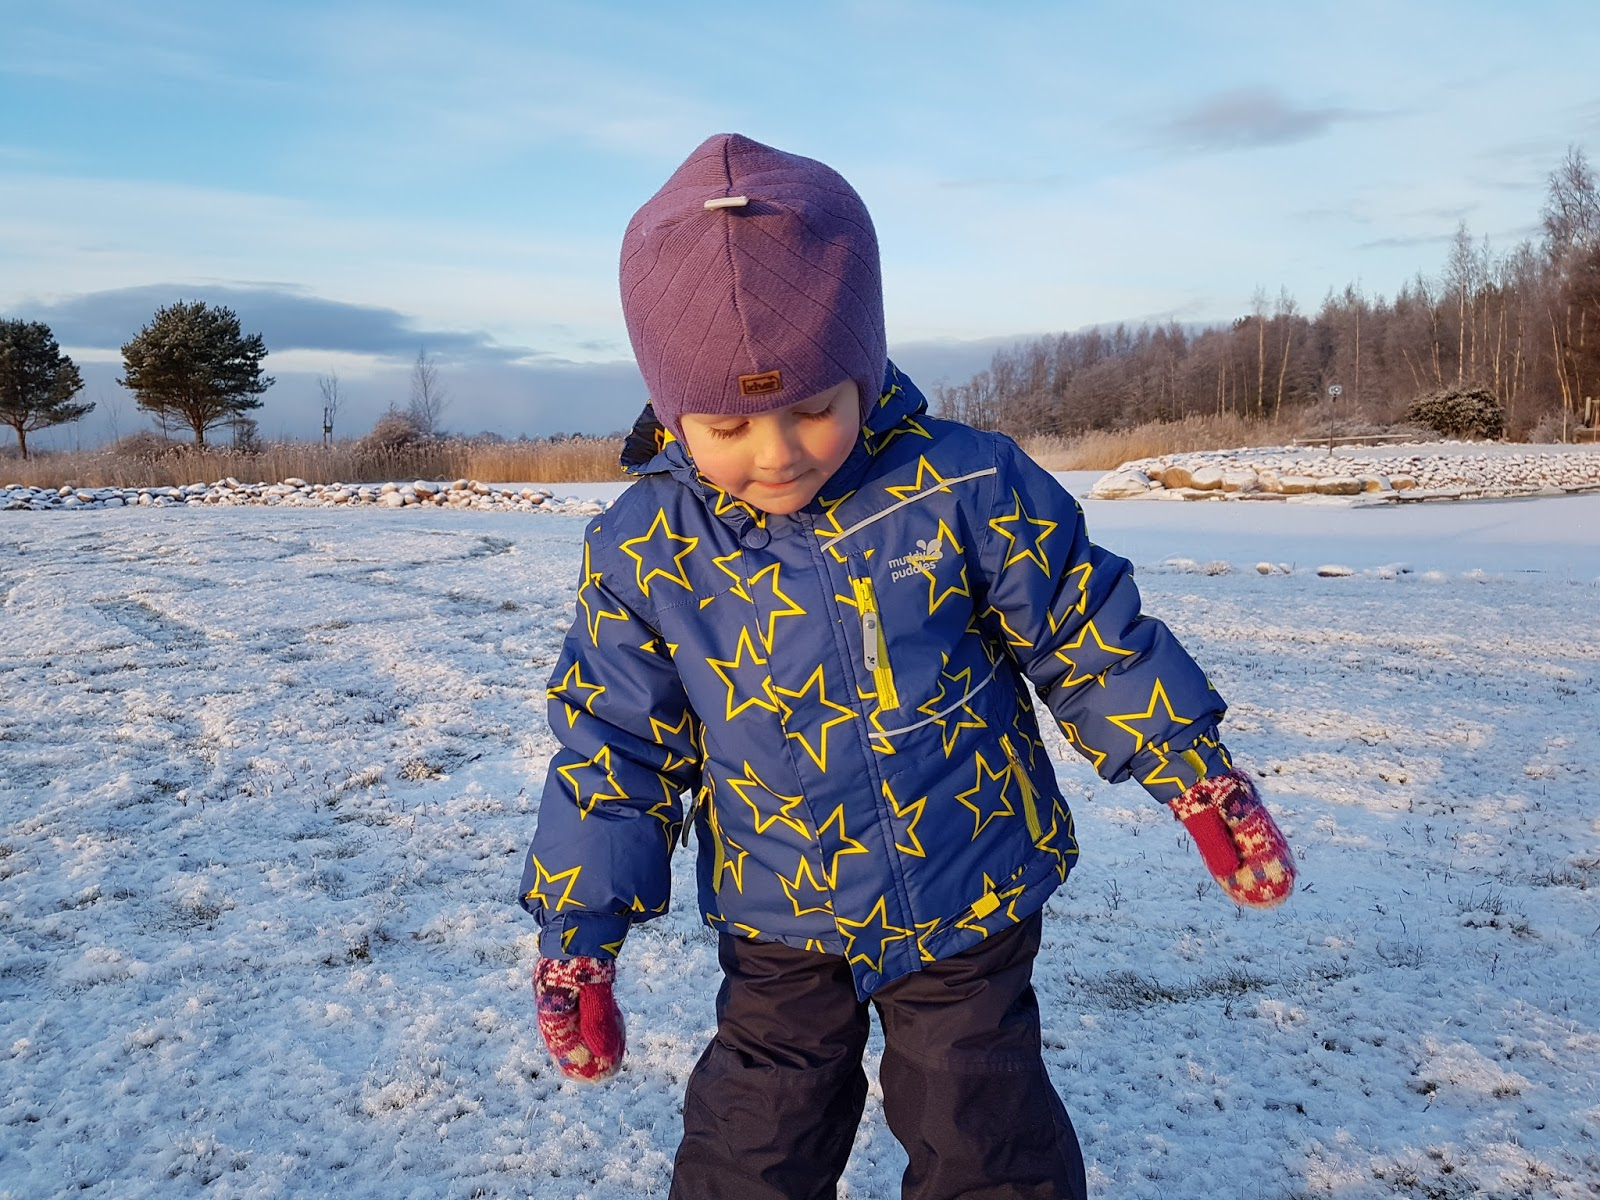 child standing in snow and wearing ski clothing